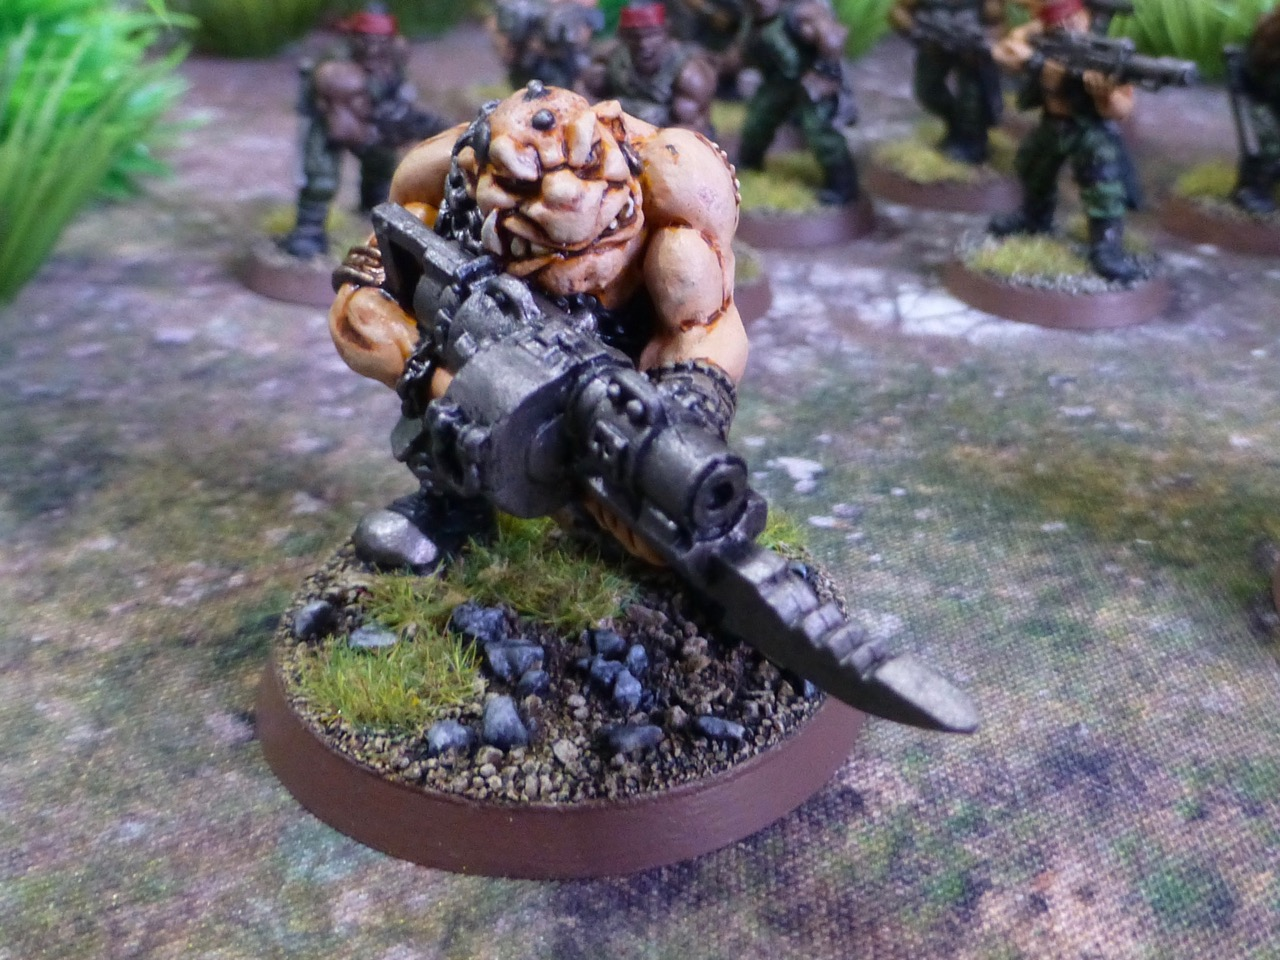 Ogryn holding a gun with attached bayonet